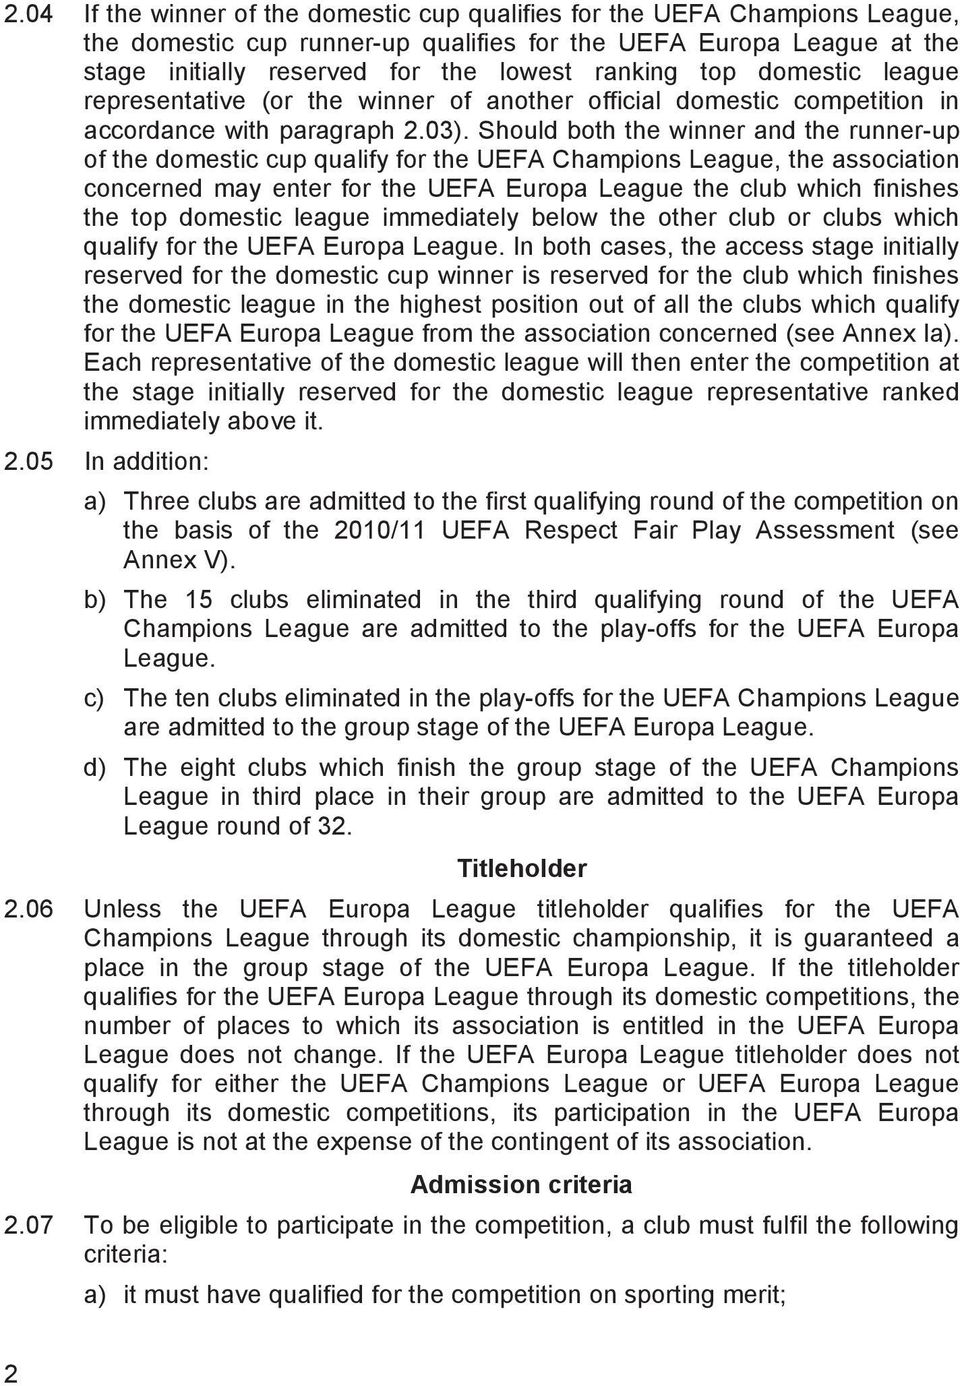 Should both the winner and the runner-up of the domestic cup qualify for the UEFA Champions League, the association concerned may enter for the UEFA Europa League the club which finishes the top